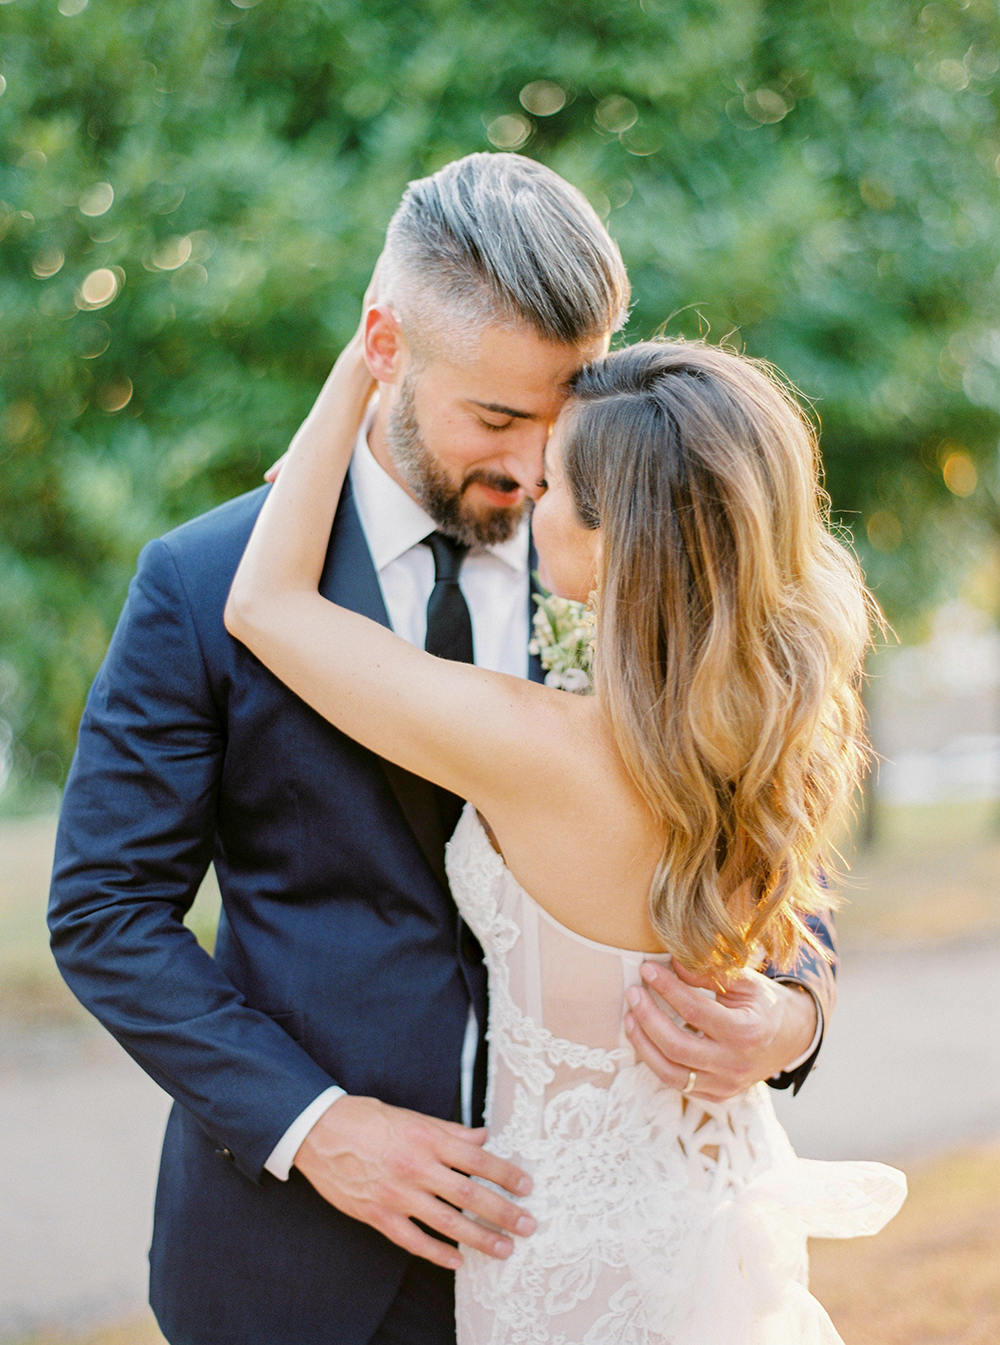 couple photos from a destination wedding in portugal